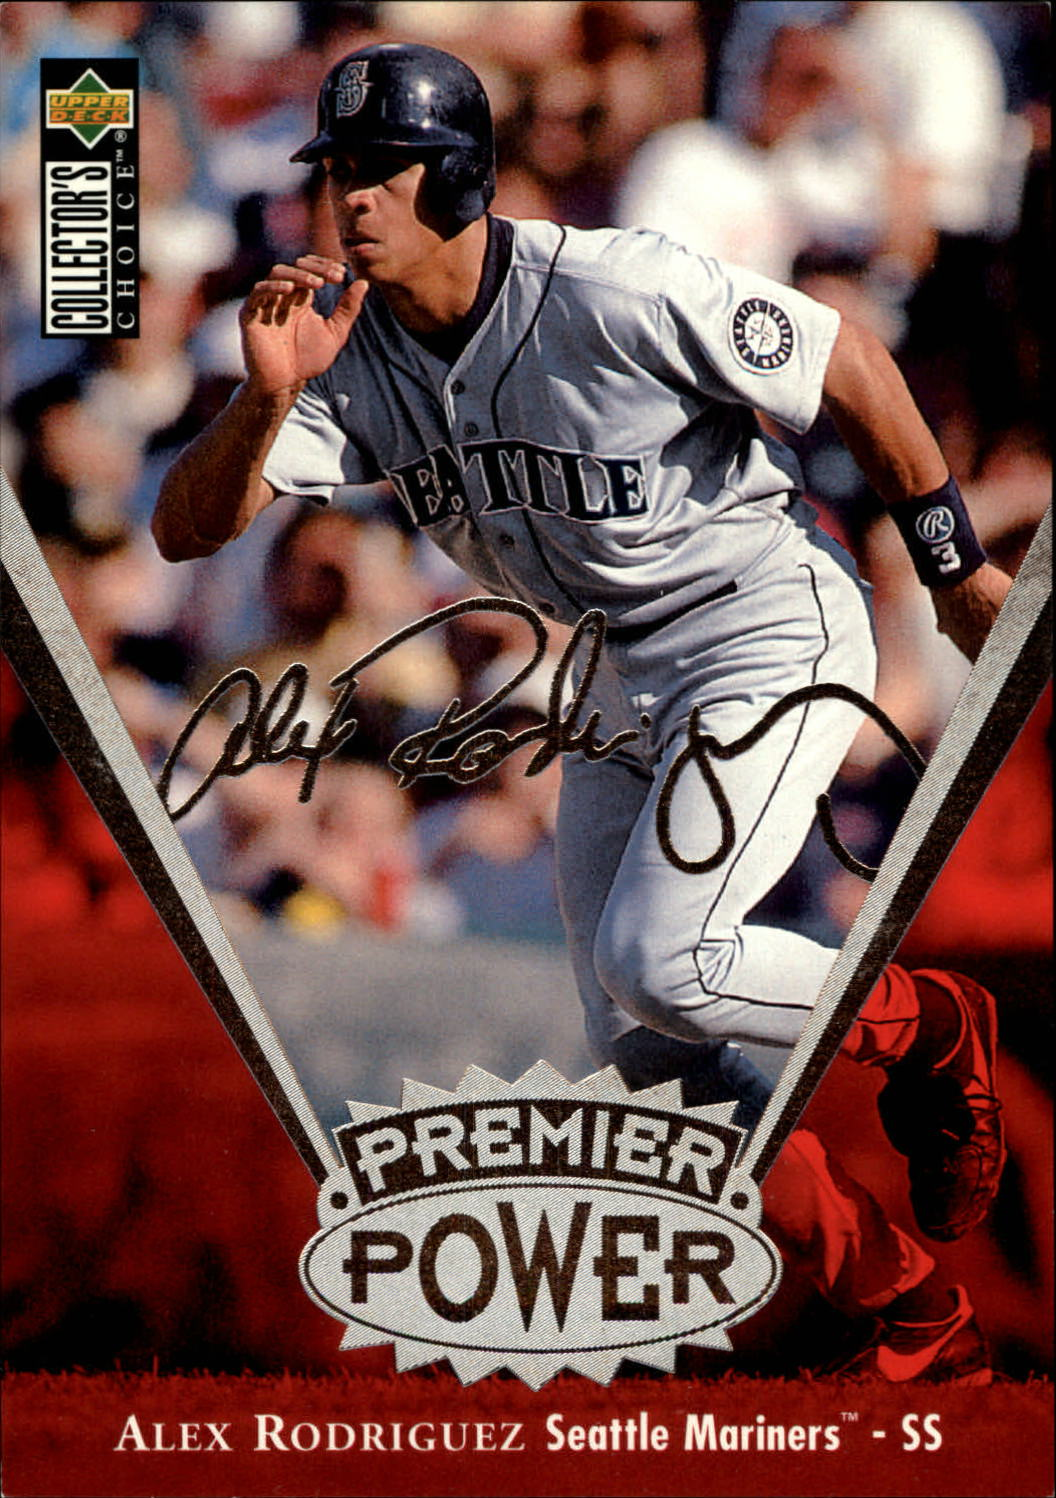 1997 Collector's Choice Premier Power Jumbos #PP18 Alex Rodriguez